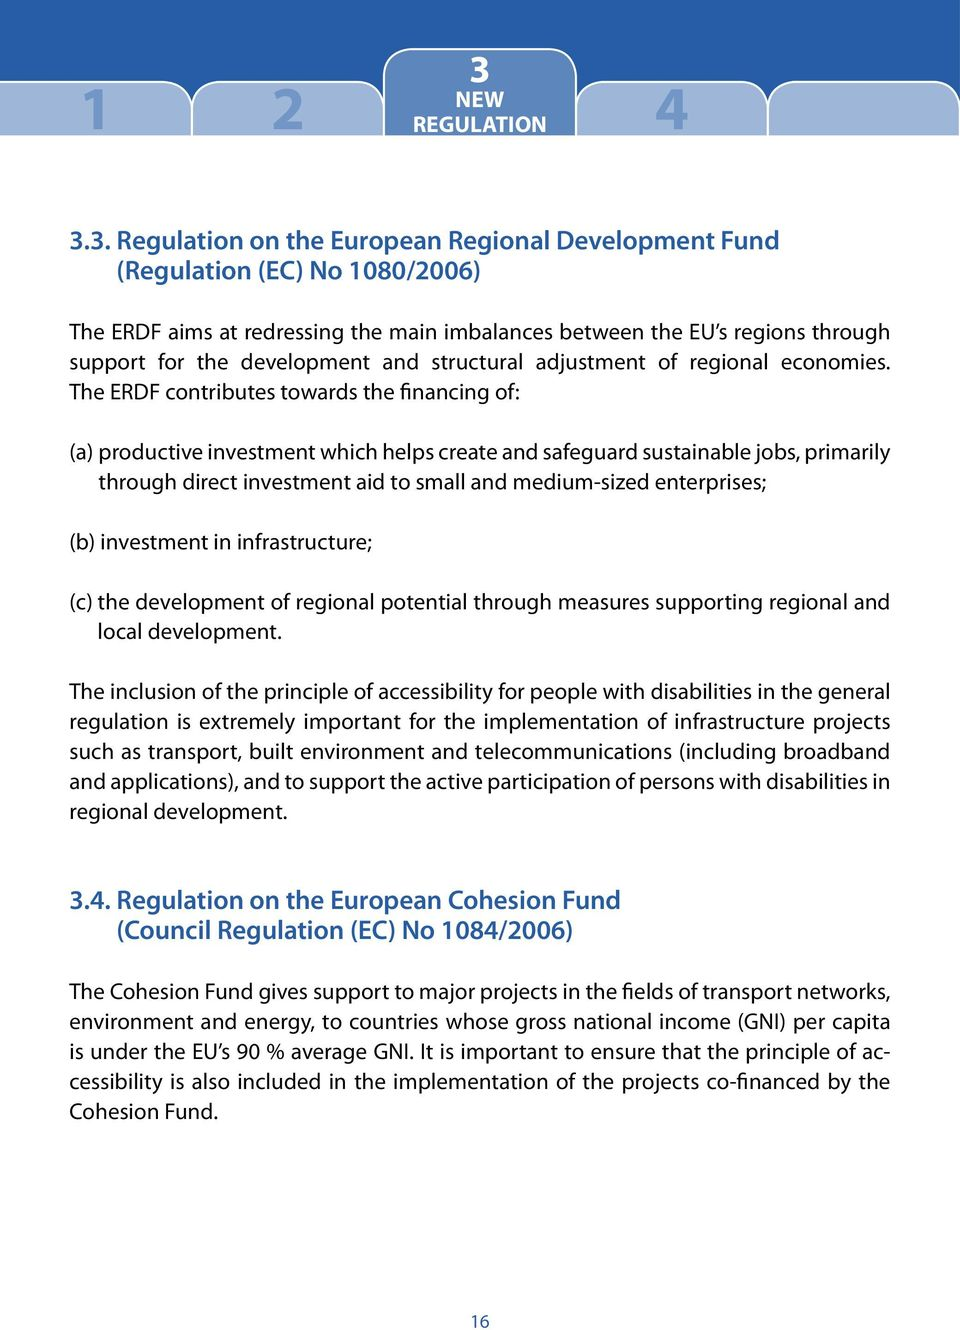 The ERDF contributes towards the financing of: (a) productive investment which helps create and safeguard sustainable jobs, primarily through direct investment aid to small and medium-sized